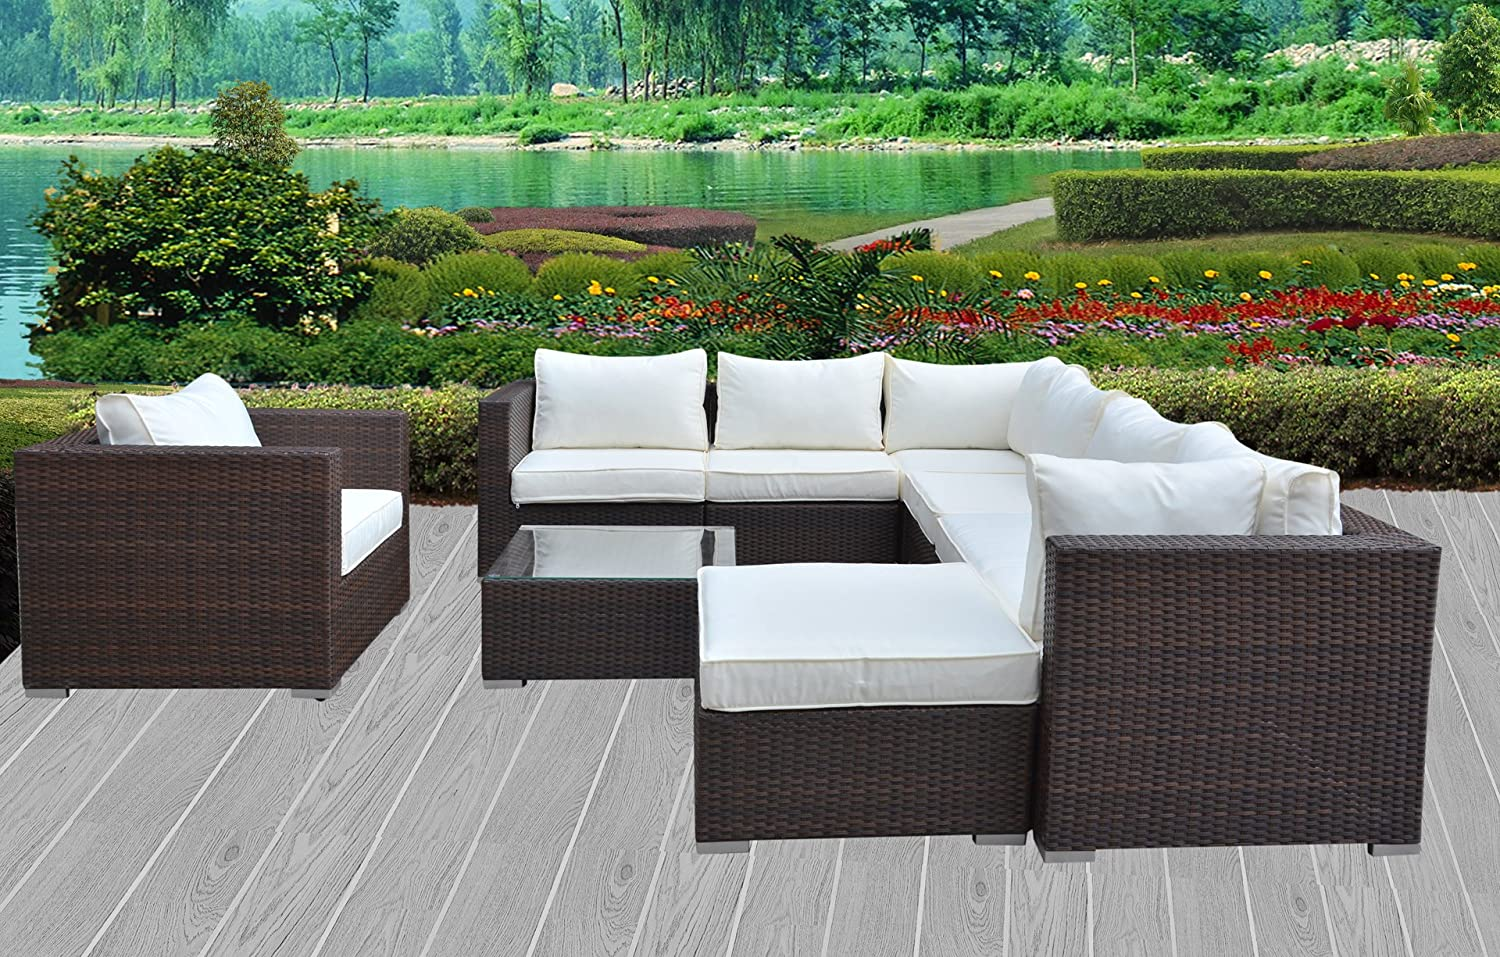 hansson polyrattan lounge sitzgruppe gartenm bel garnitur poly rattan 3 bis 7 sitzpl tze plus. Black Bedroom Furniture Sets. Home Design Ideas